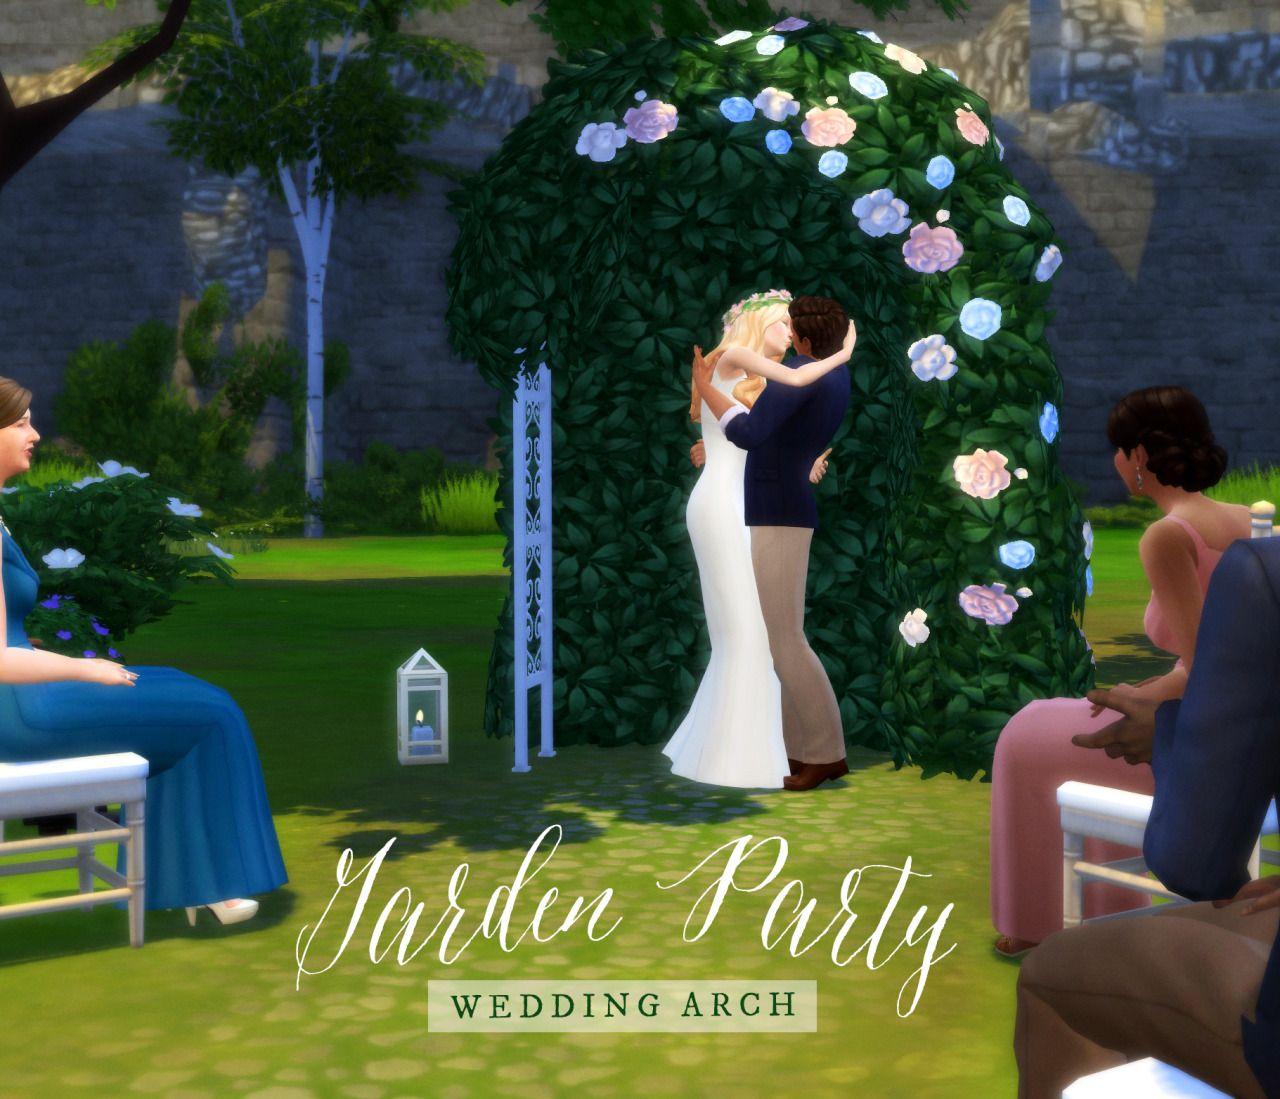 Garden Party Wedding Archthrow Your